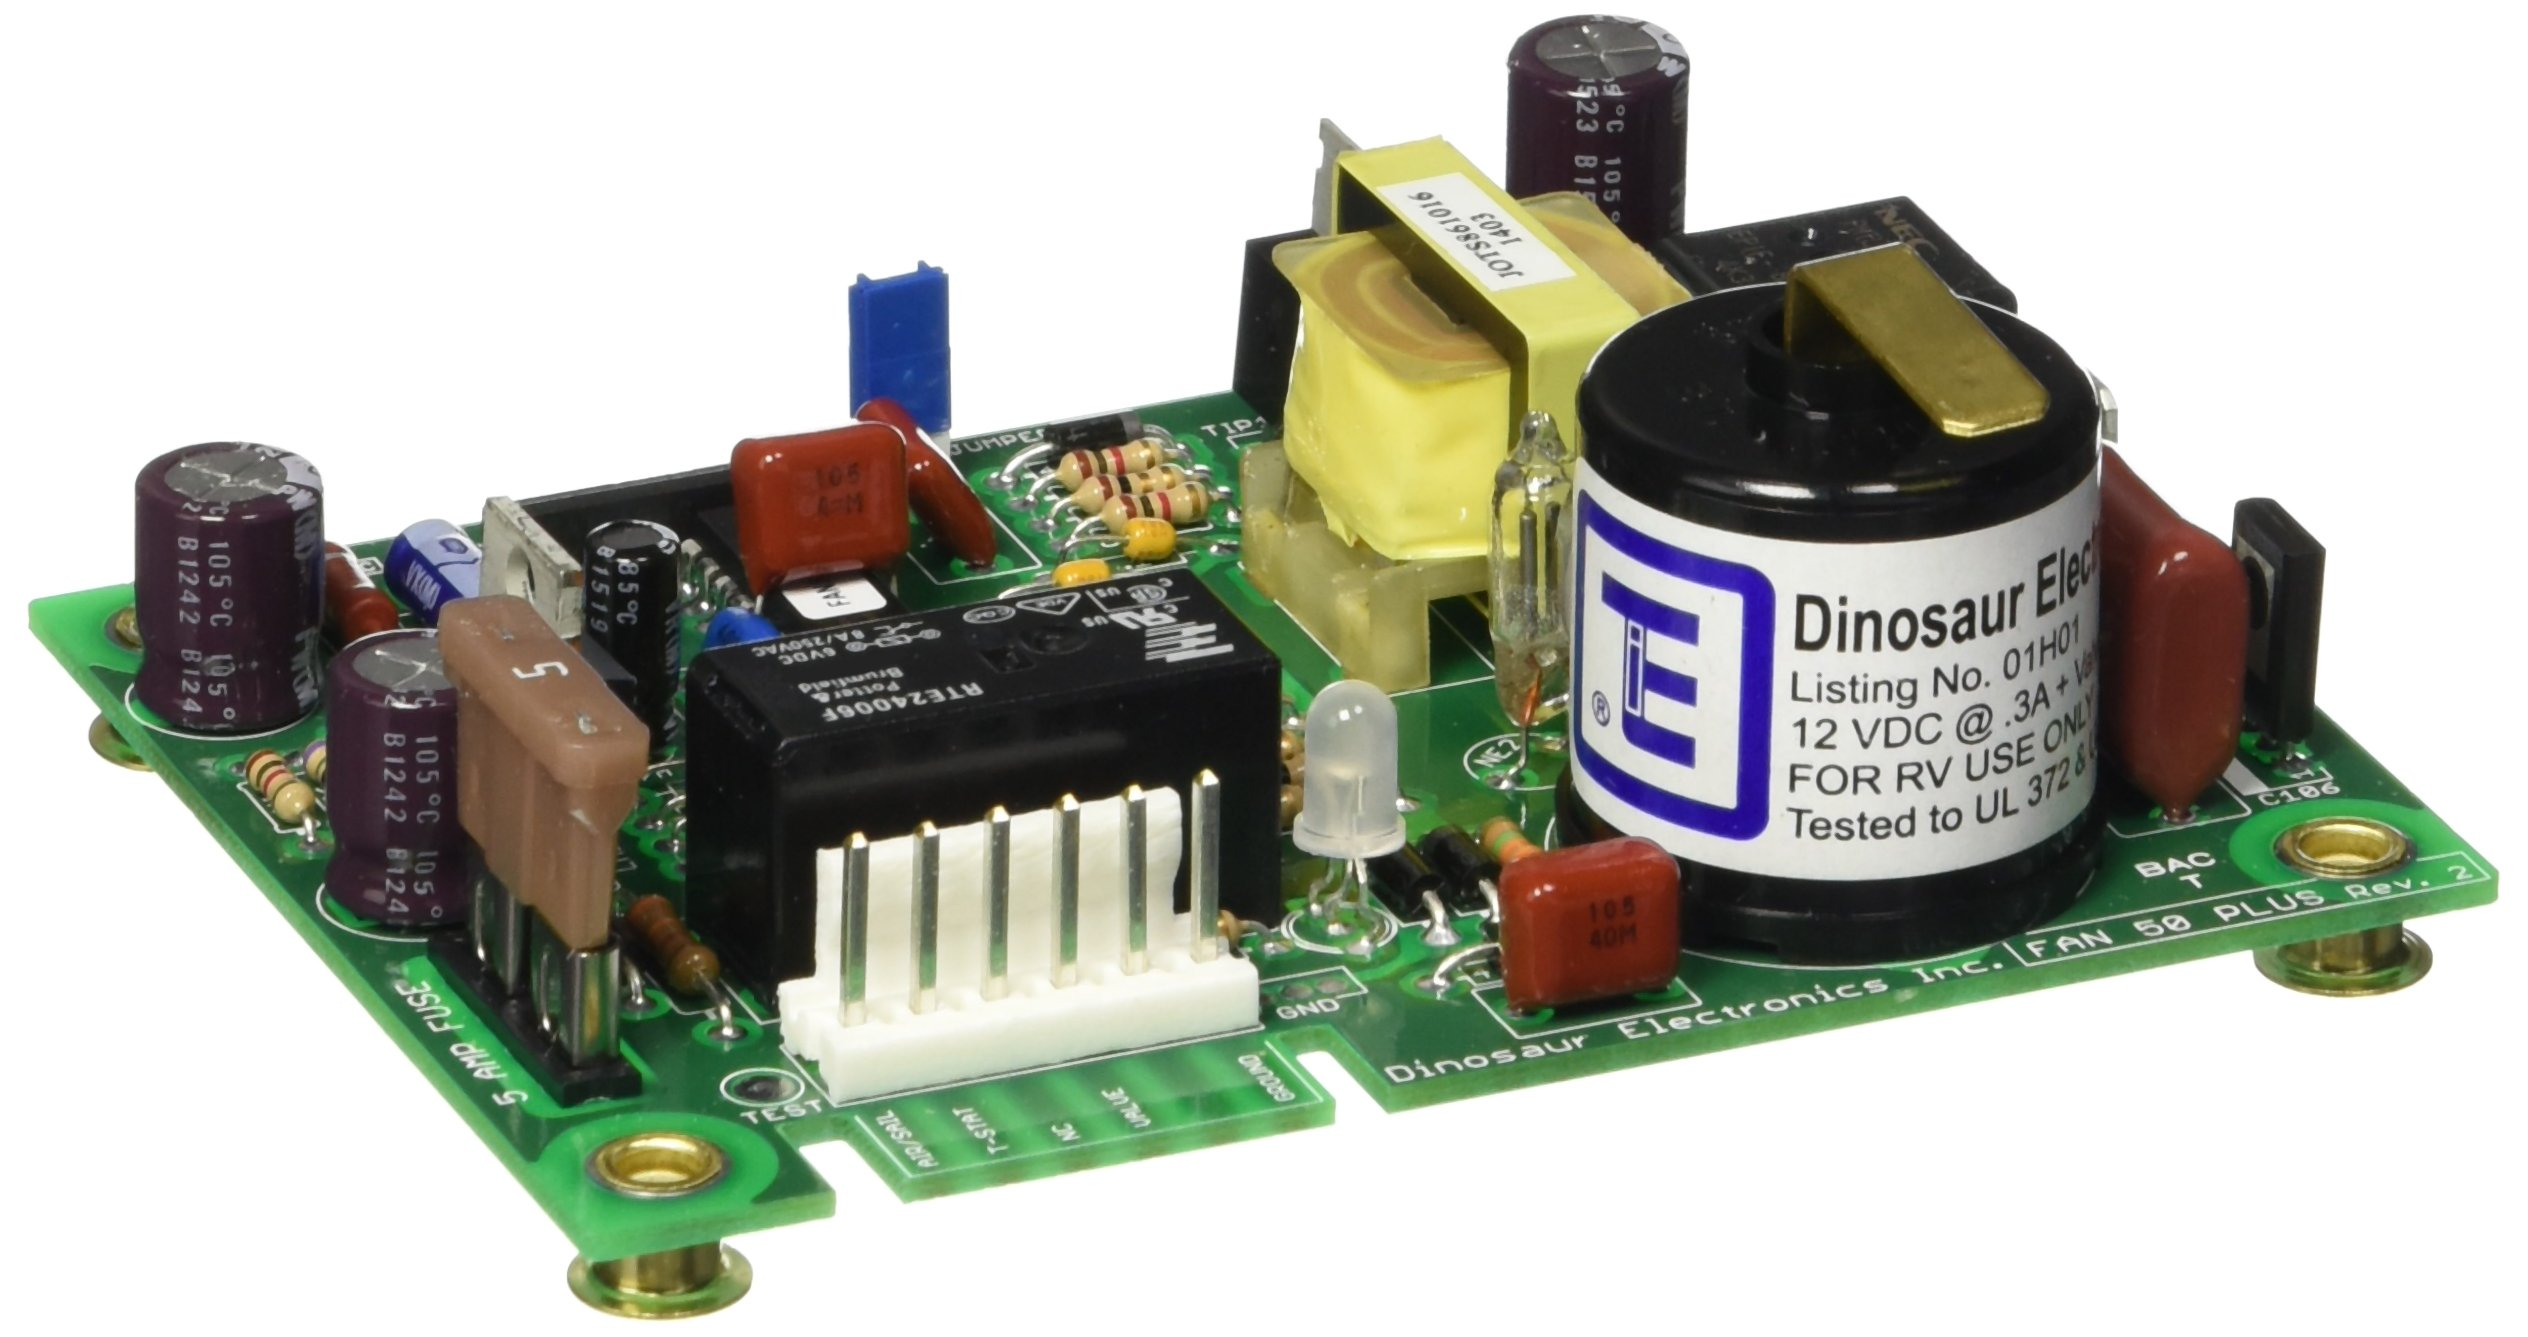 Dinosaur Electronics FAN50PLUS Universal Igniter Board with Fan Control  product image